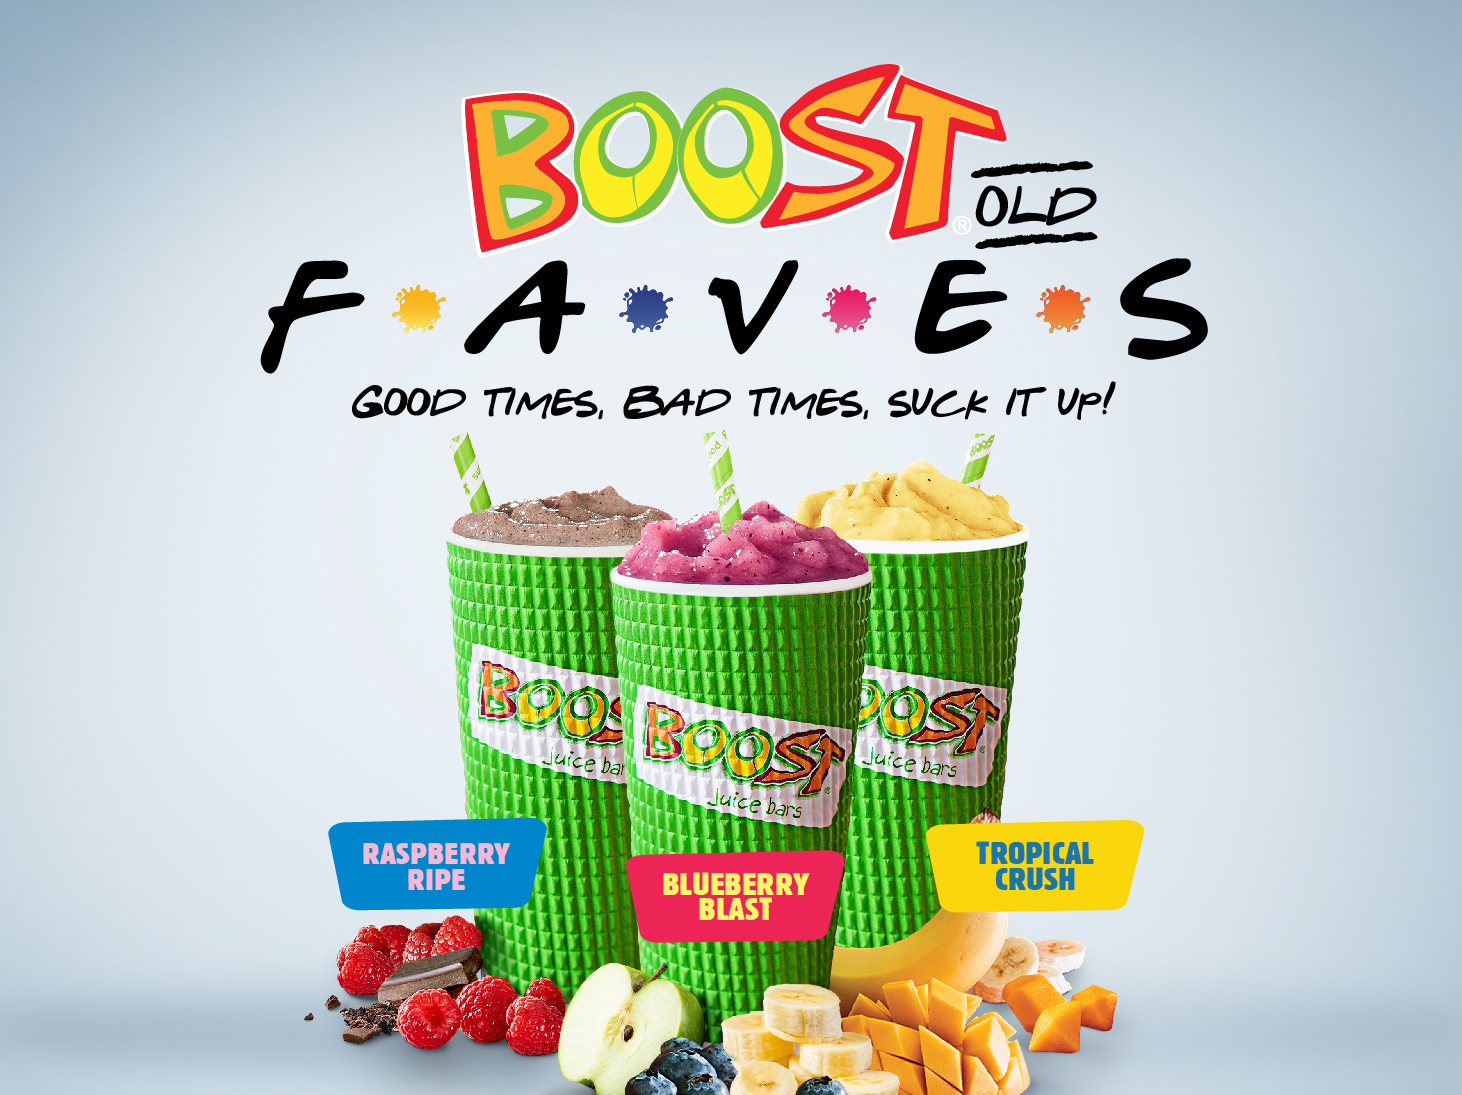 Boost Old FAVES Now Available!